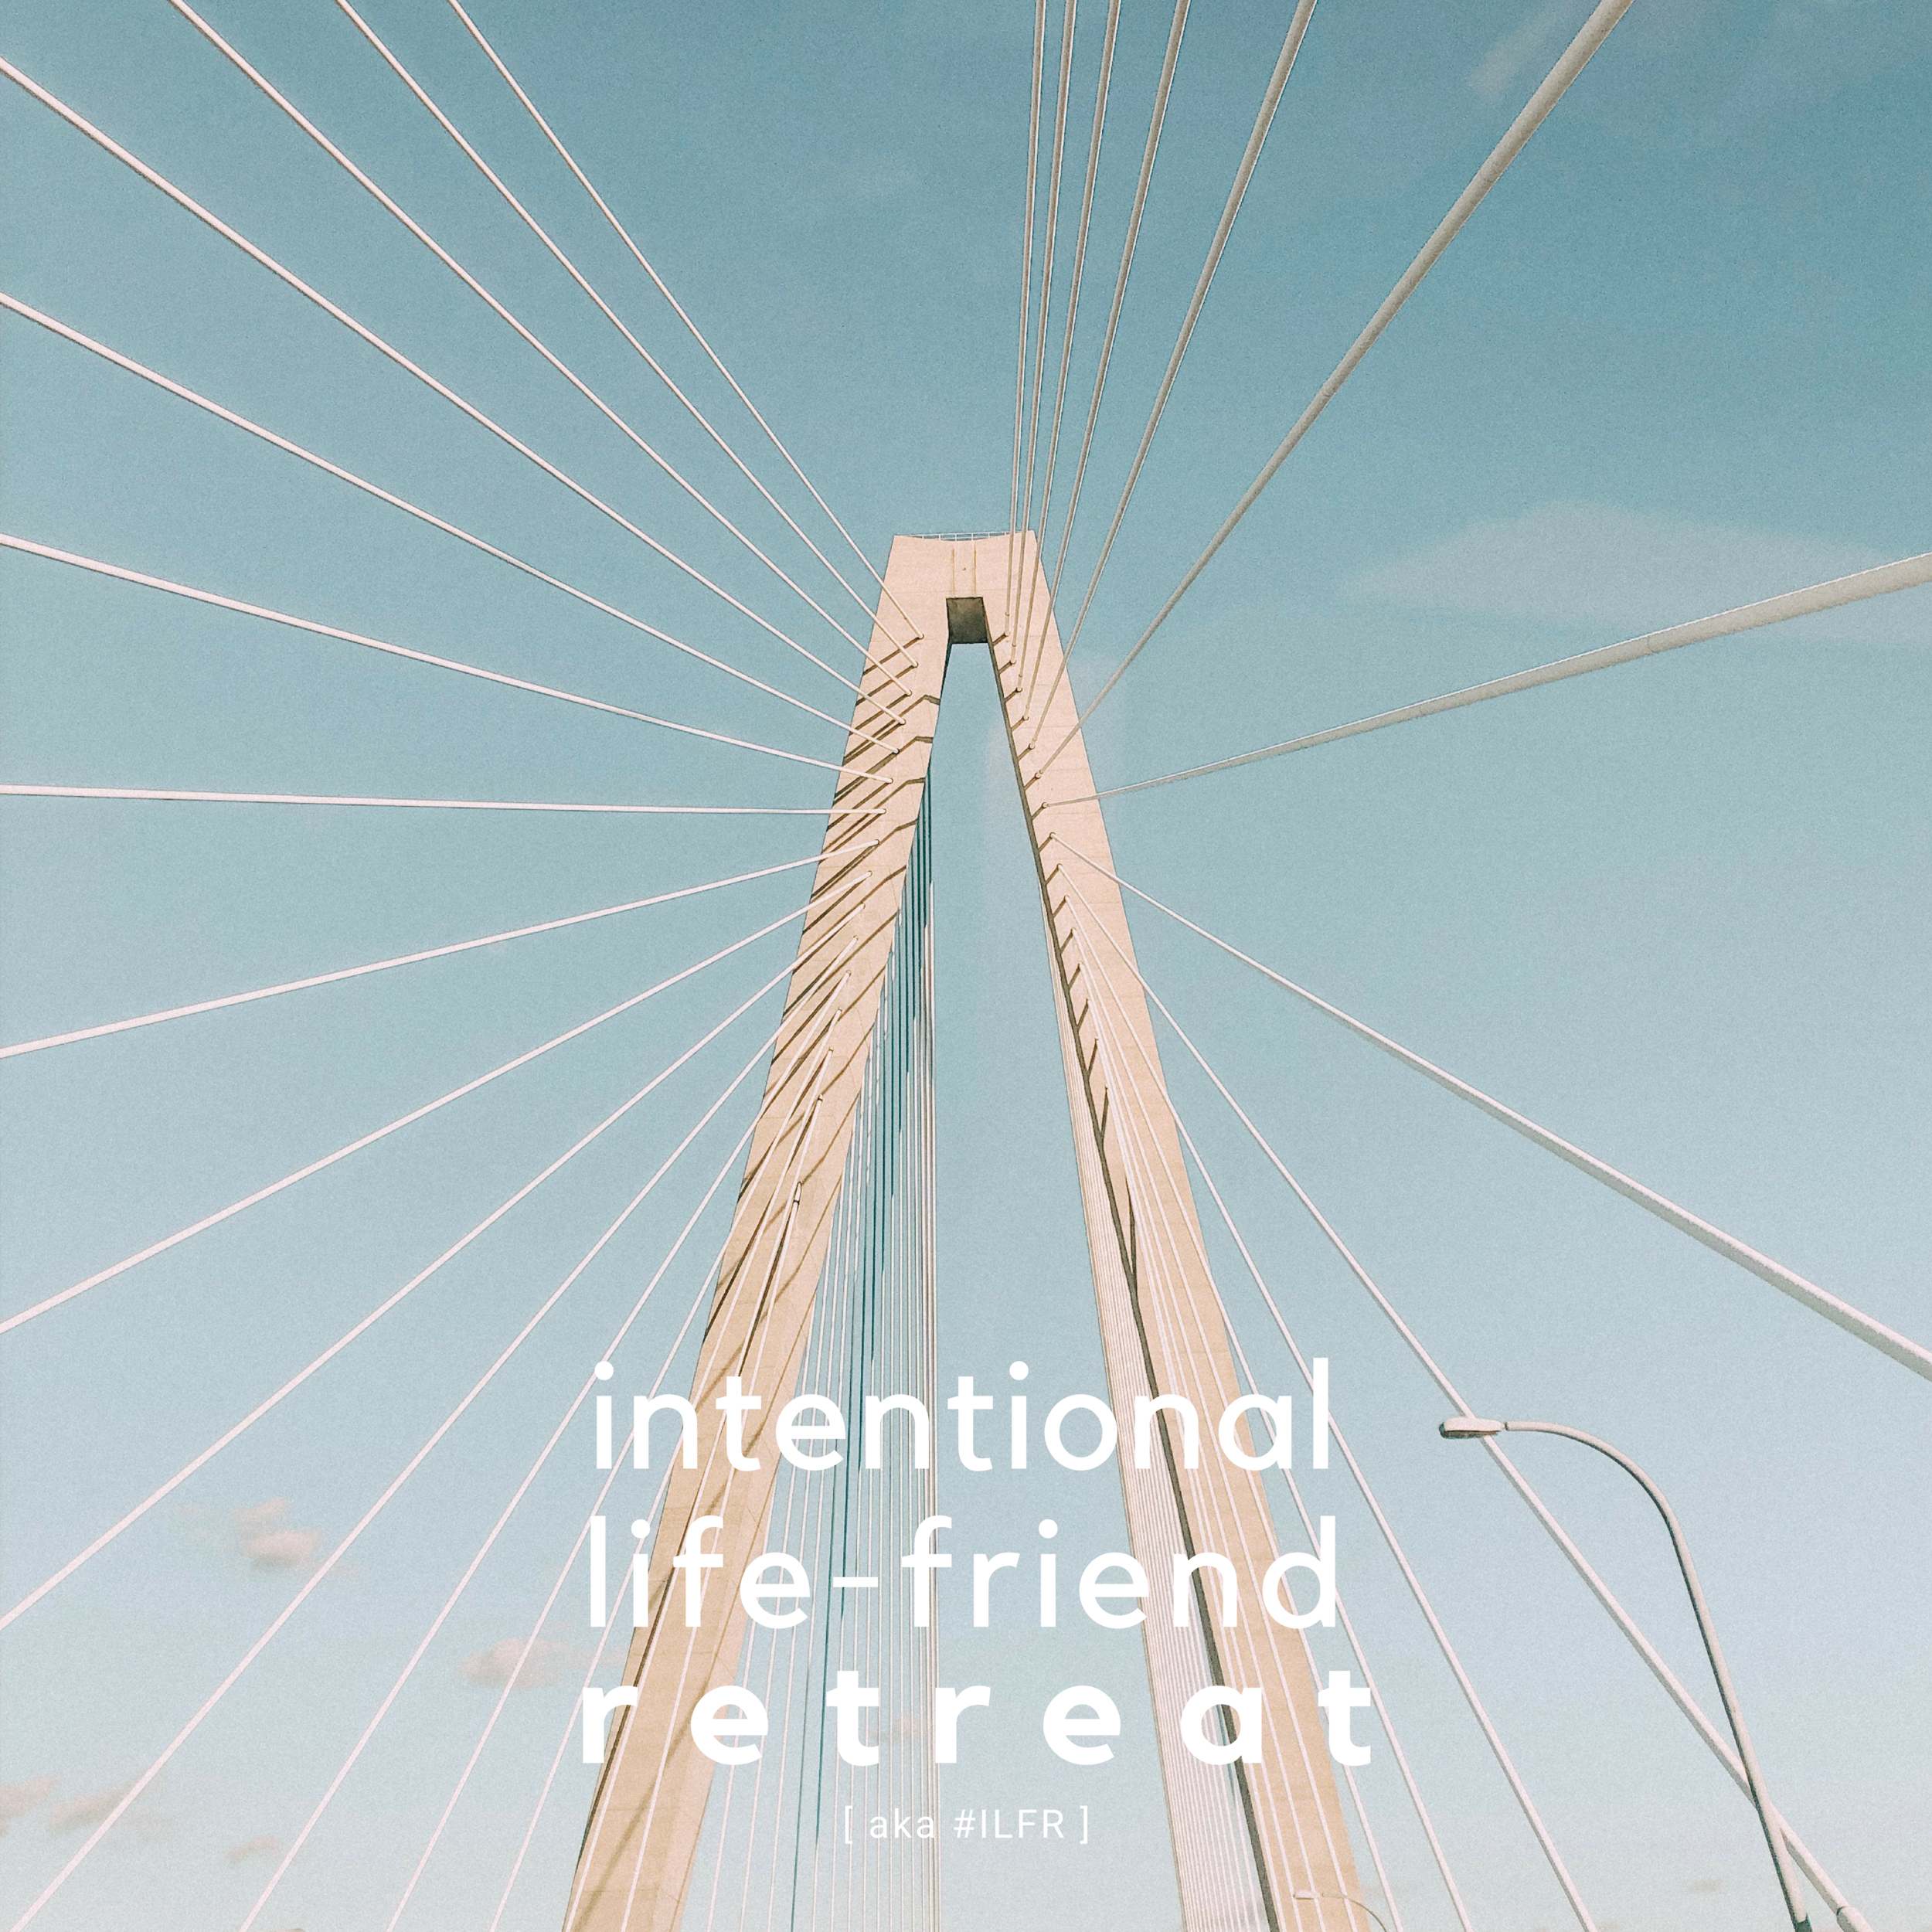 intentional life-friend retreat.png